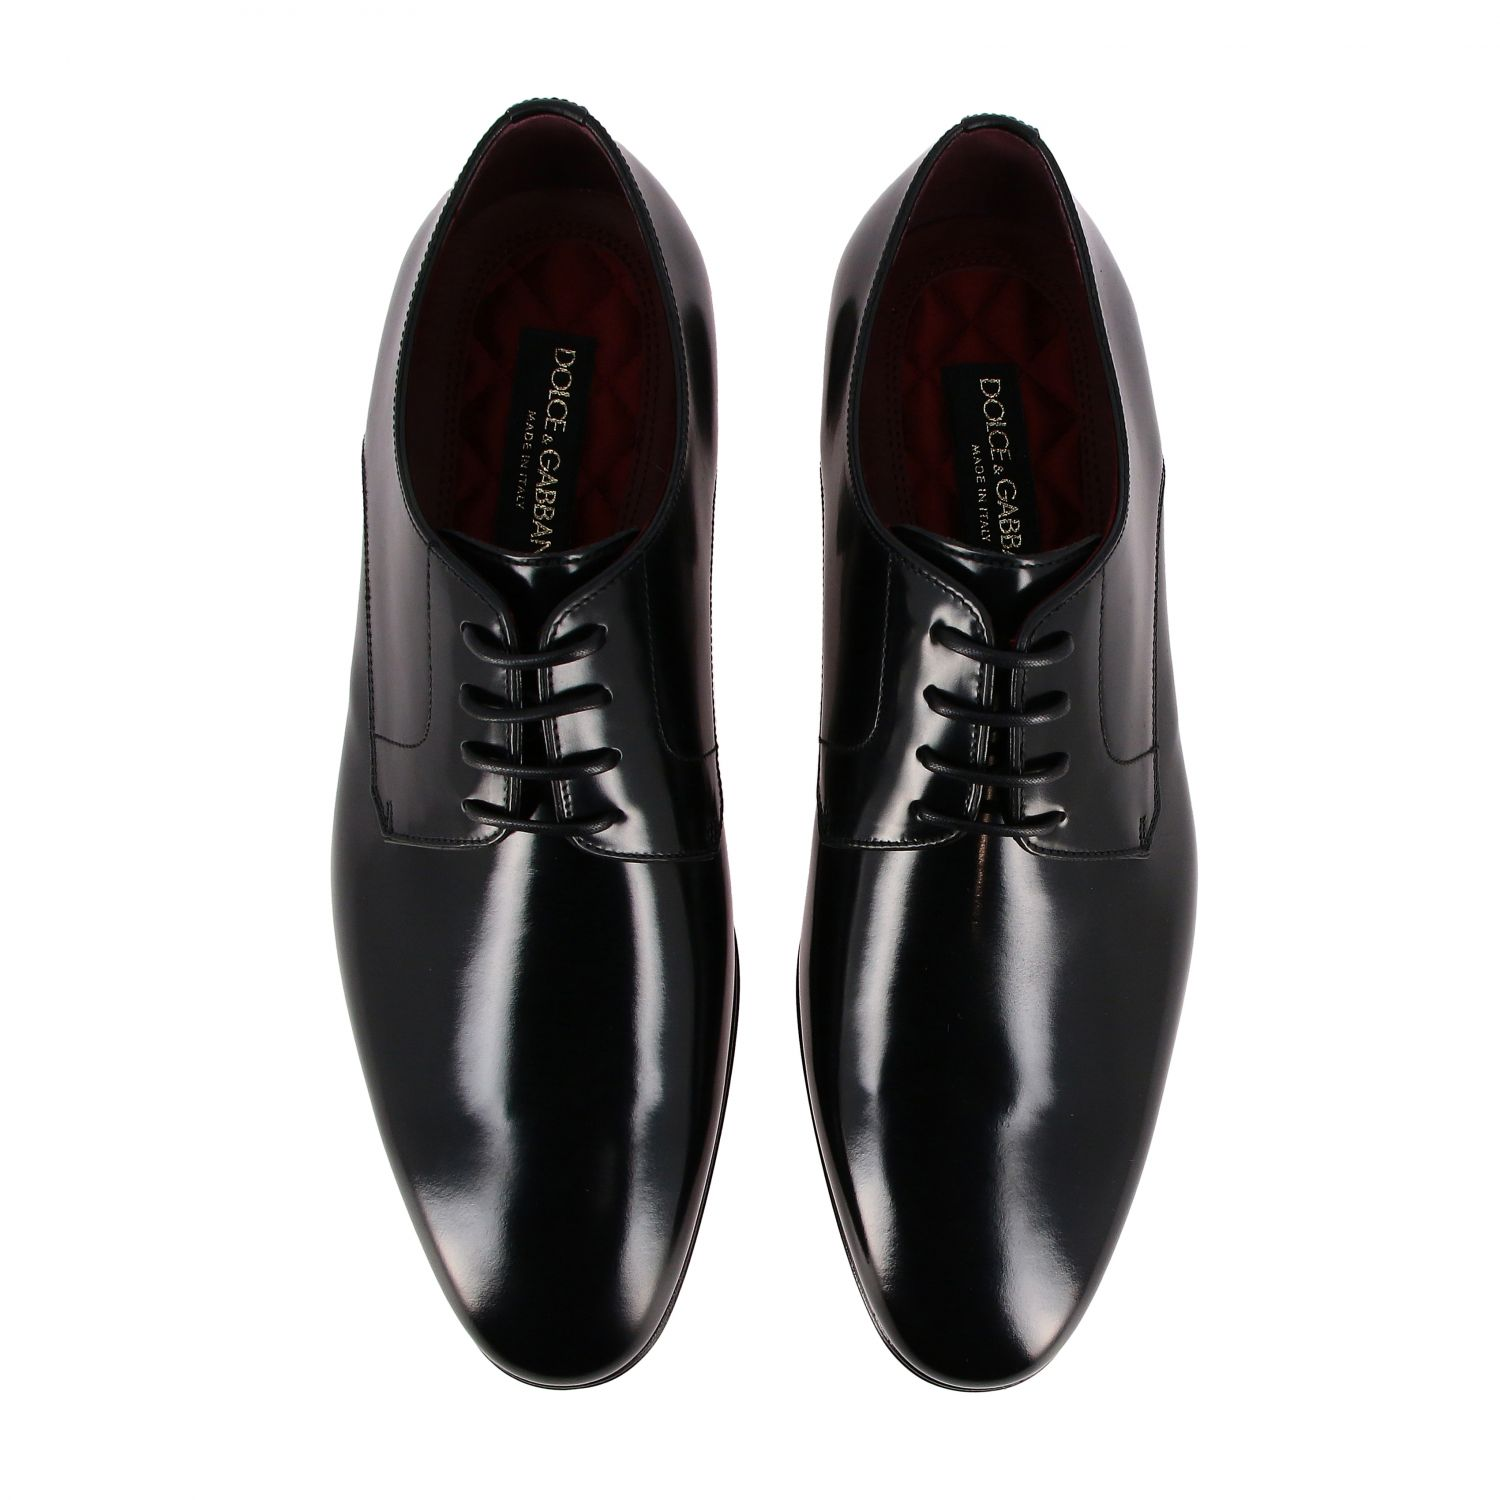 Brogue shoes Dolce & Gabbana: Dolce & Gabbana classic lace-up shoe in shiny leather black 3